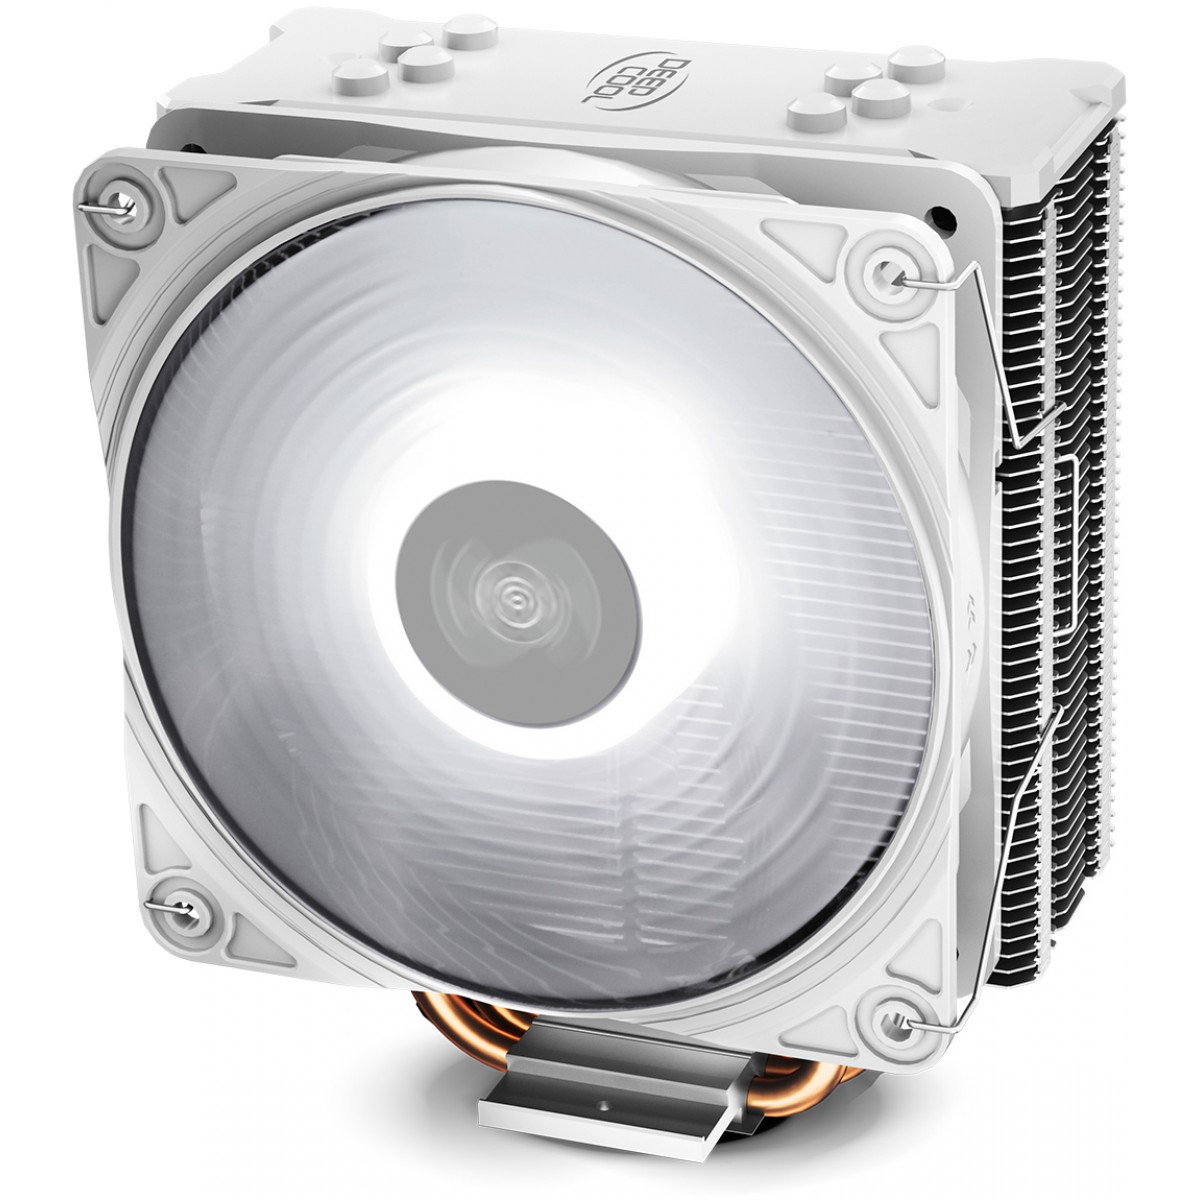 Cooler DeepCool Gammax GTE V2 WHITE, 120mm, Intel-AMD